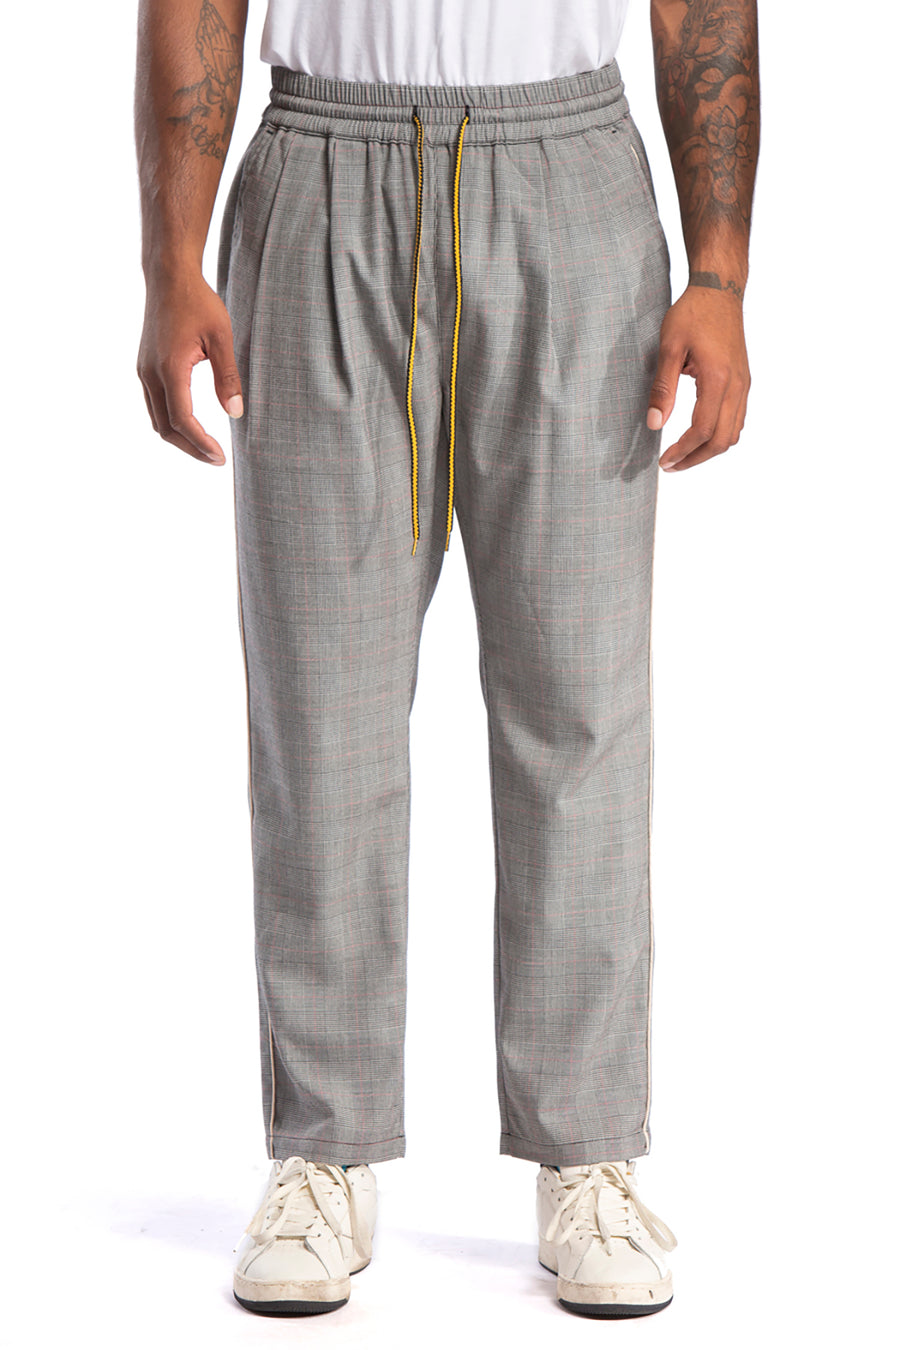 Rossmoor Pant, Grey Check